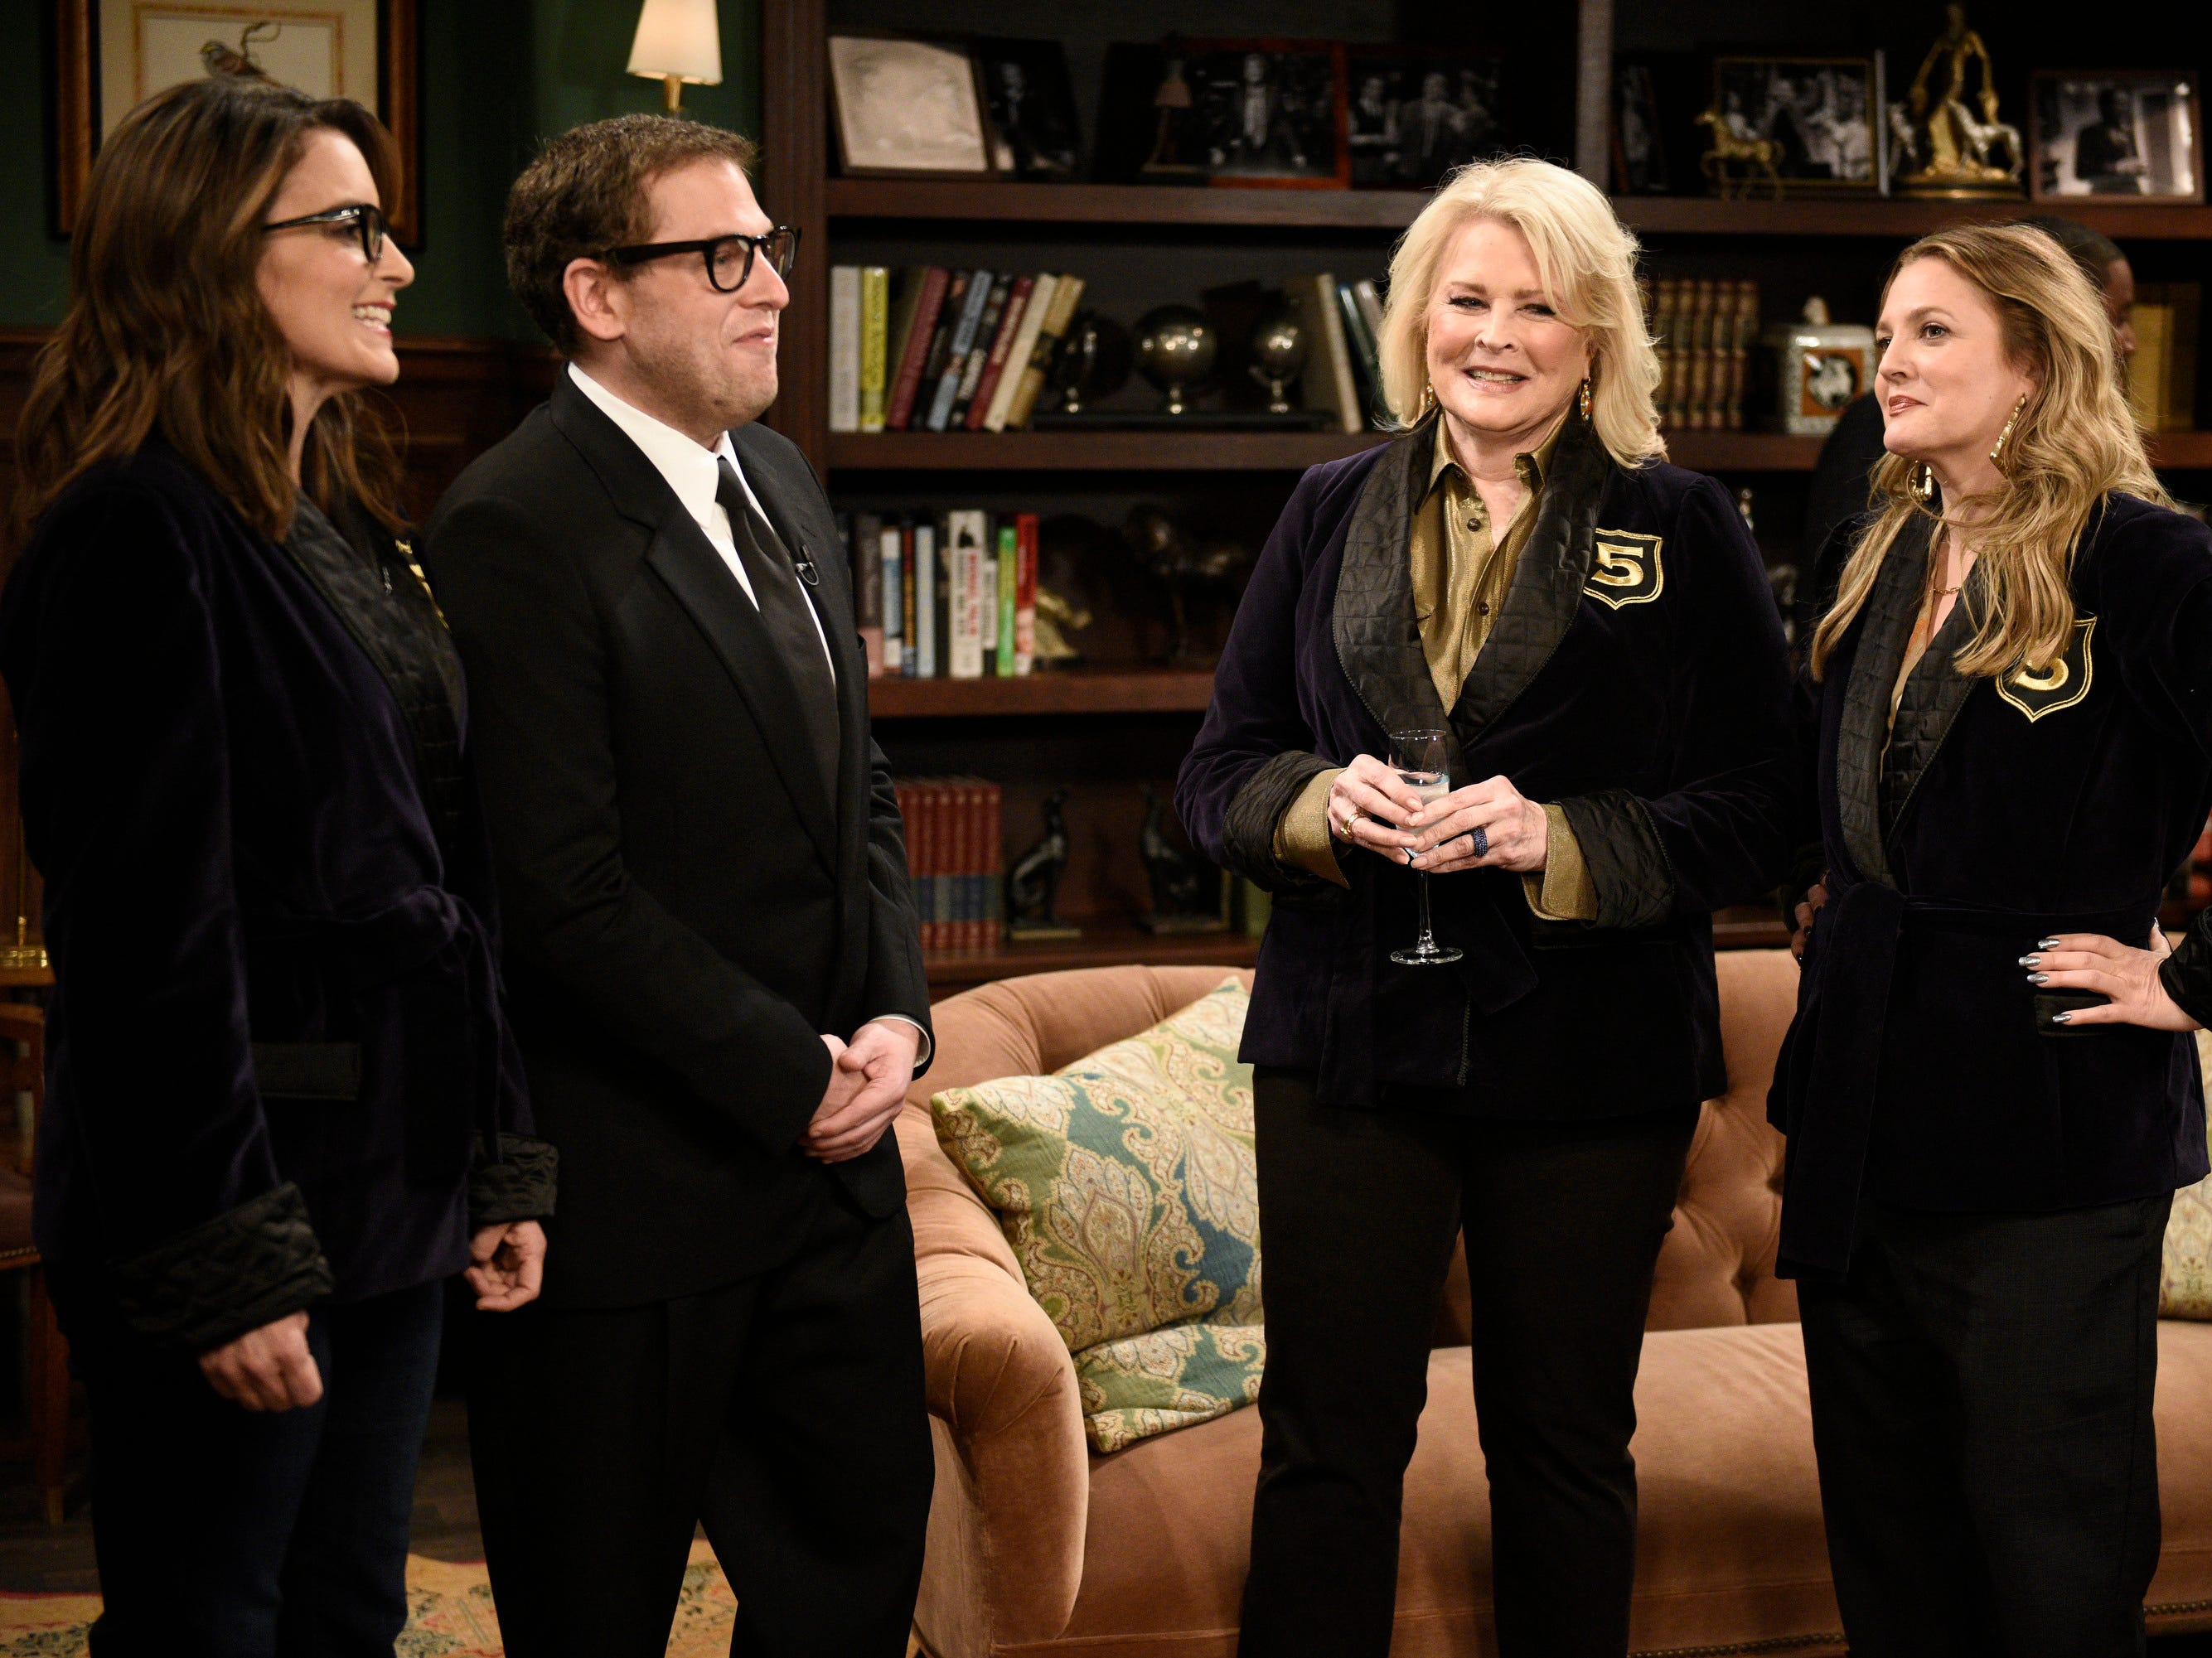 Jonah Hill hosted the show for the fifth time, making him a member of the Five-Timers Club. He was welcomed to the club by Tina Fey, Candice Bergen, and Drew Barrymore during his opening monologue.